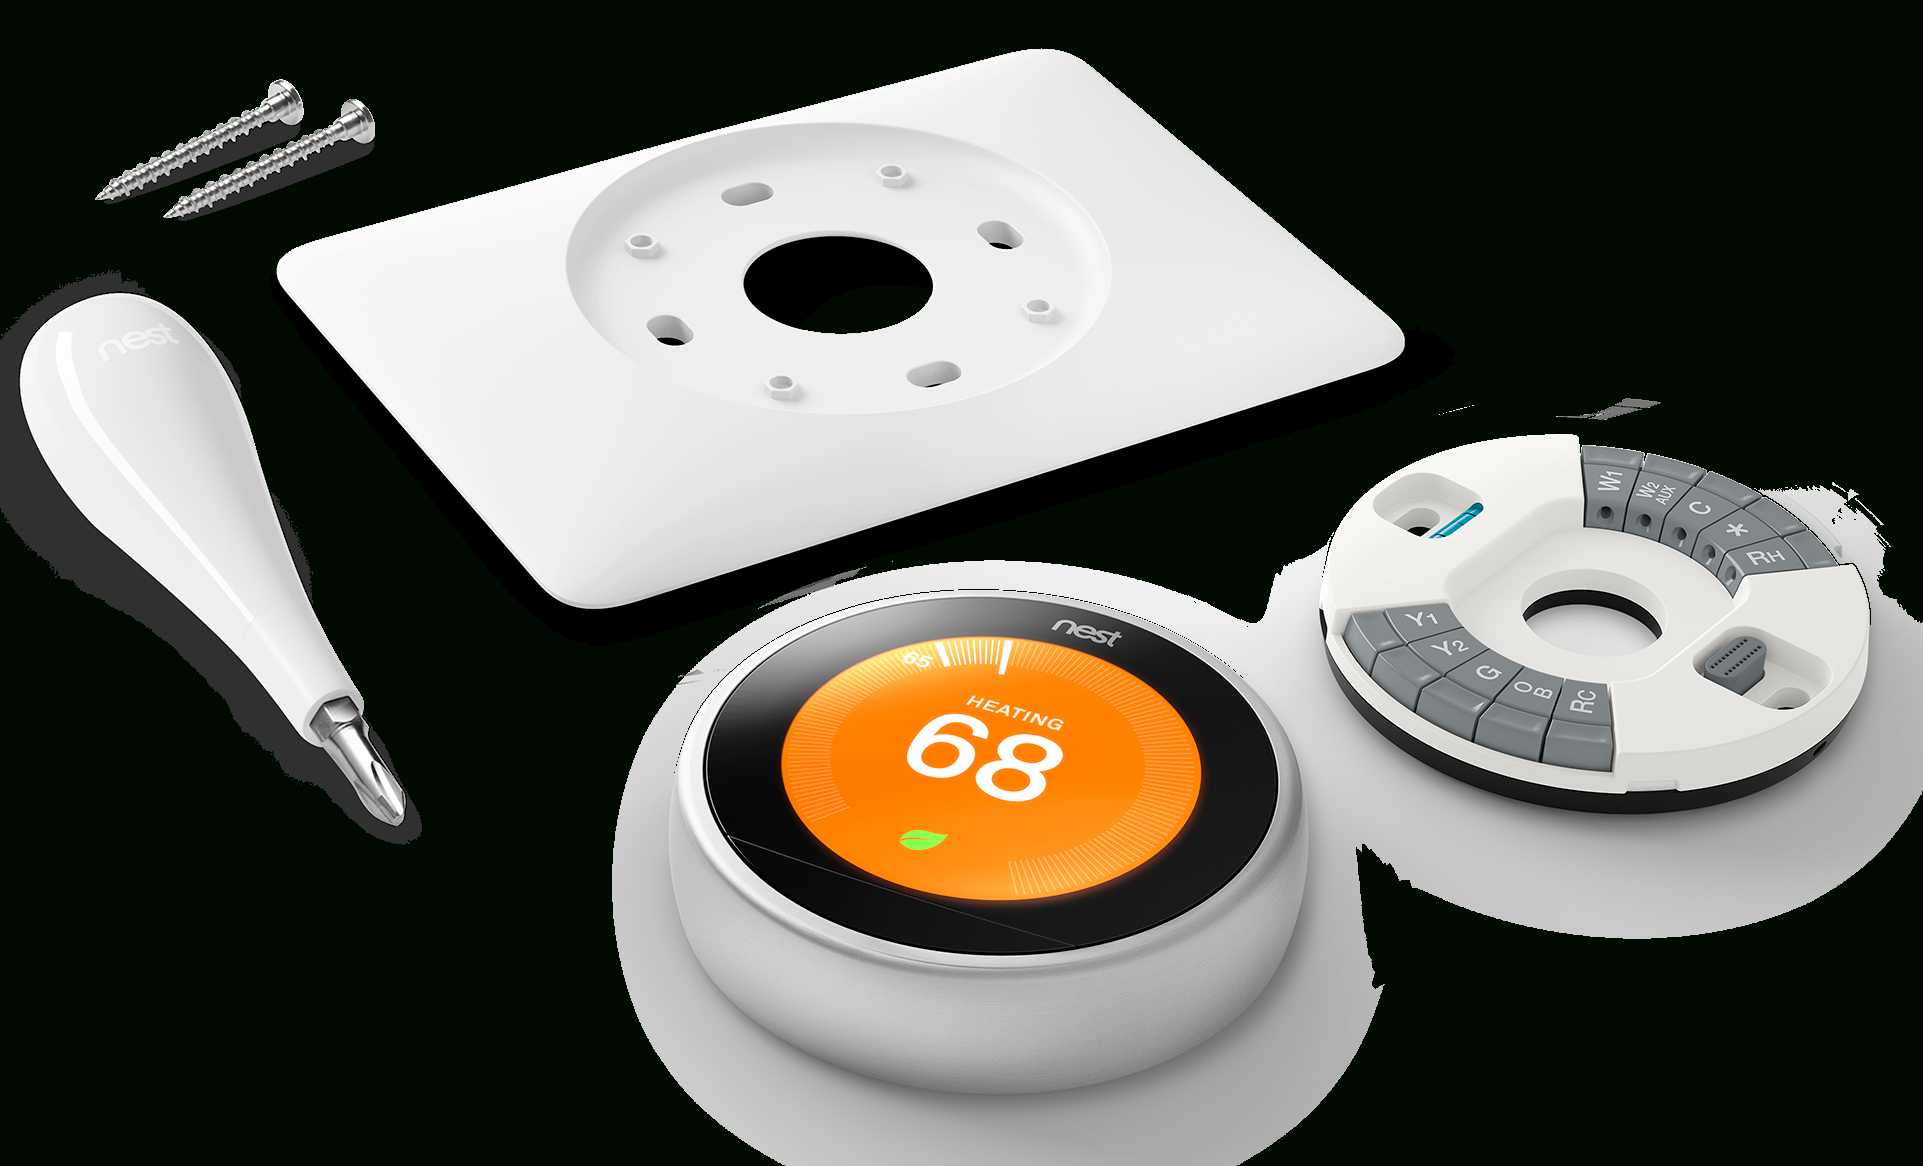 How To Install Your Nest Thermostat - Nest Thermostat E Wiring Diagram